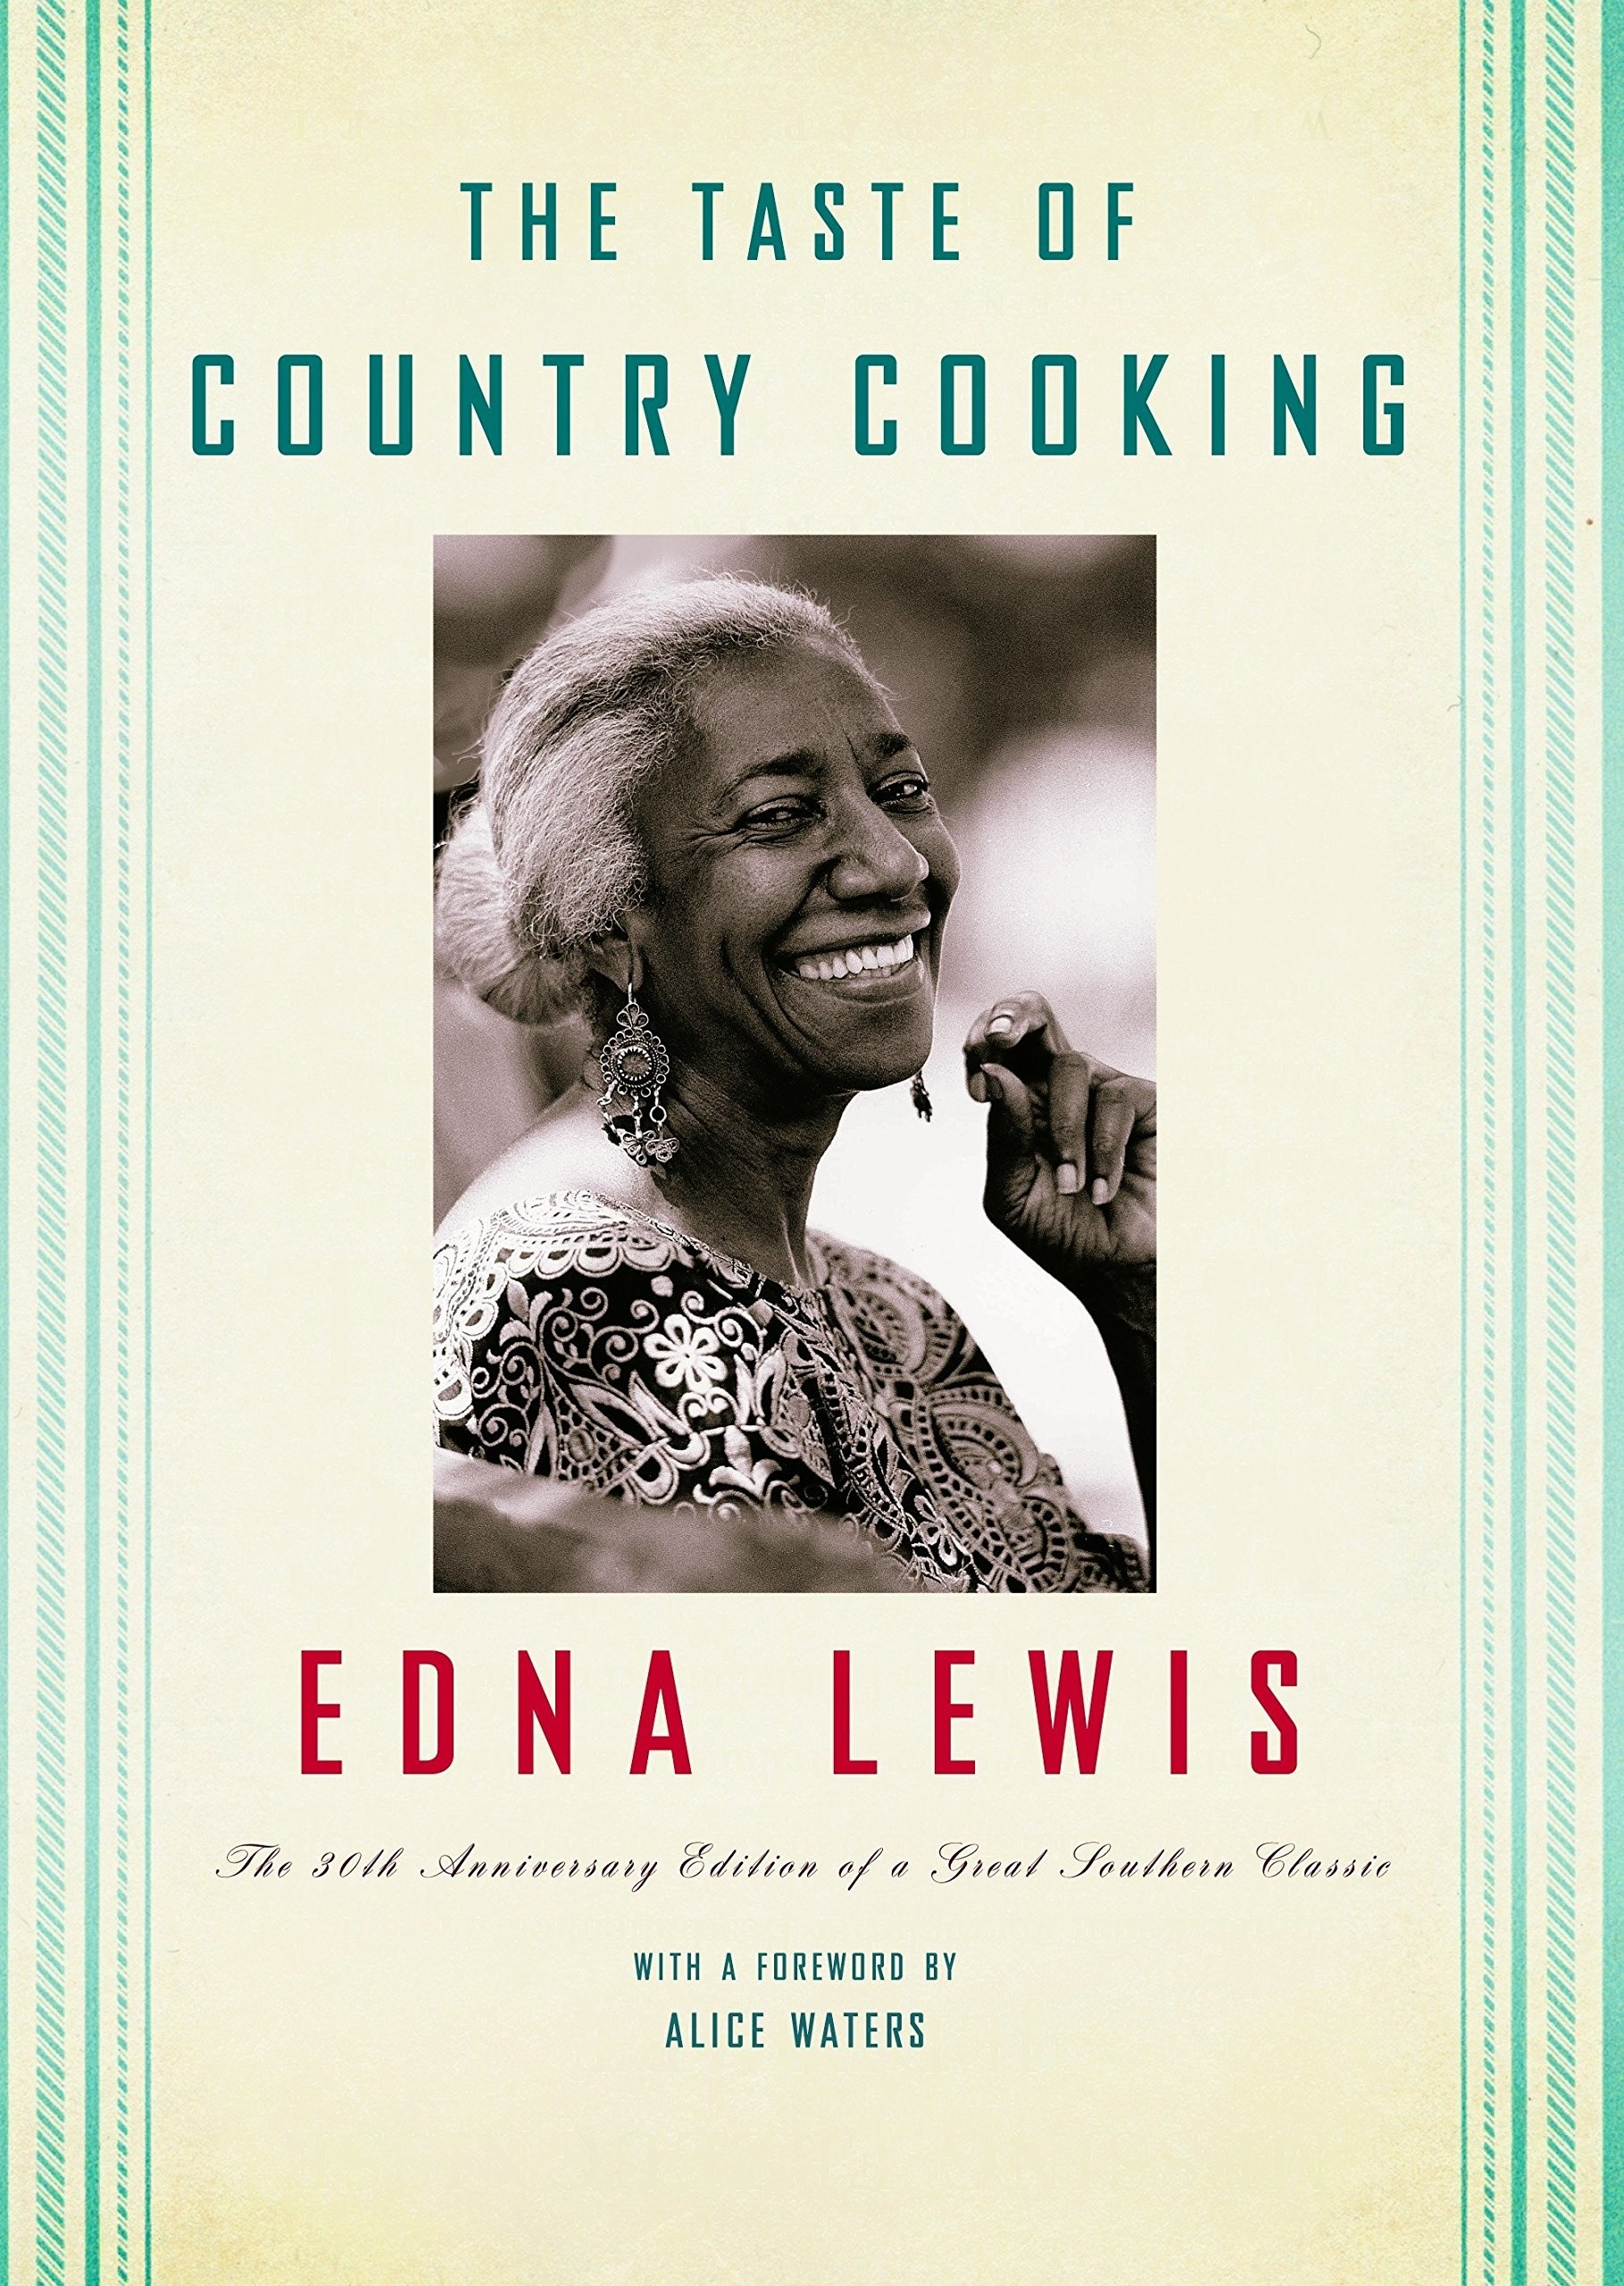 The cover of the book with a black and white portrait of chef and author Edna Lewis